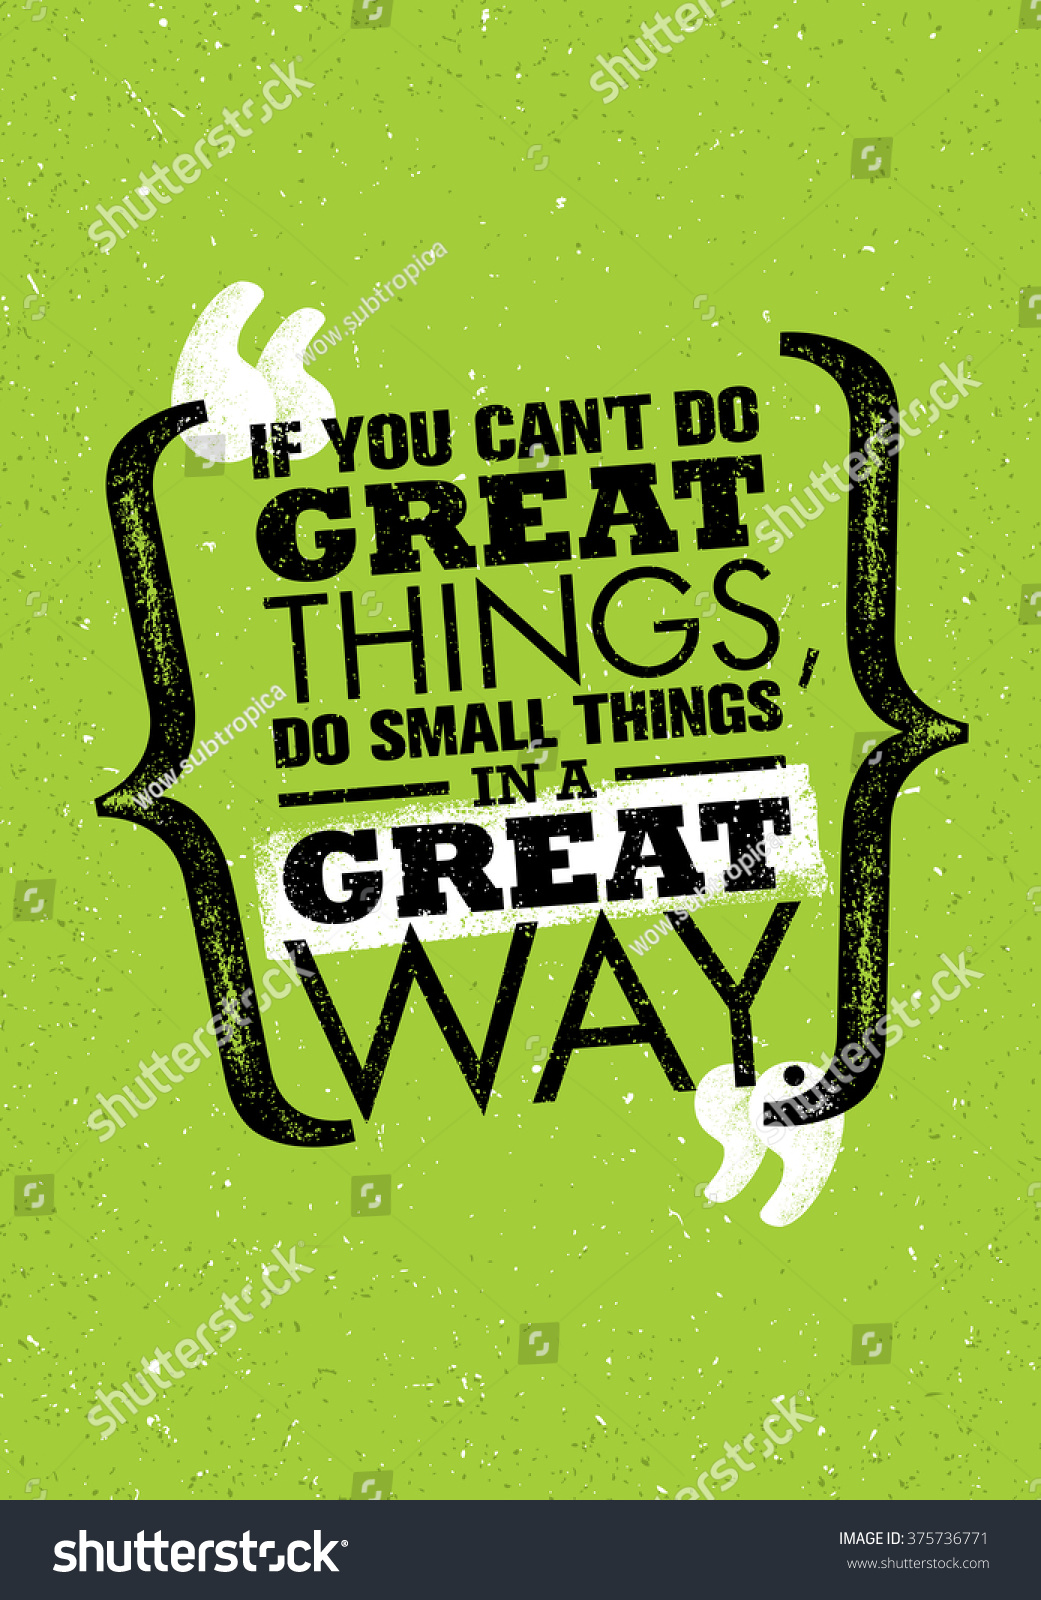 If You Can'T Do Great Things, Do Small Things In A Great